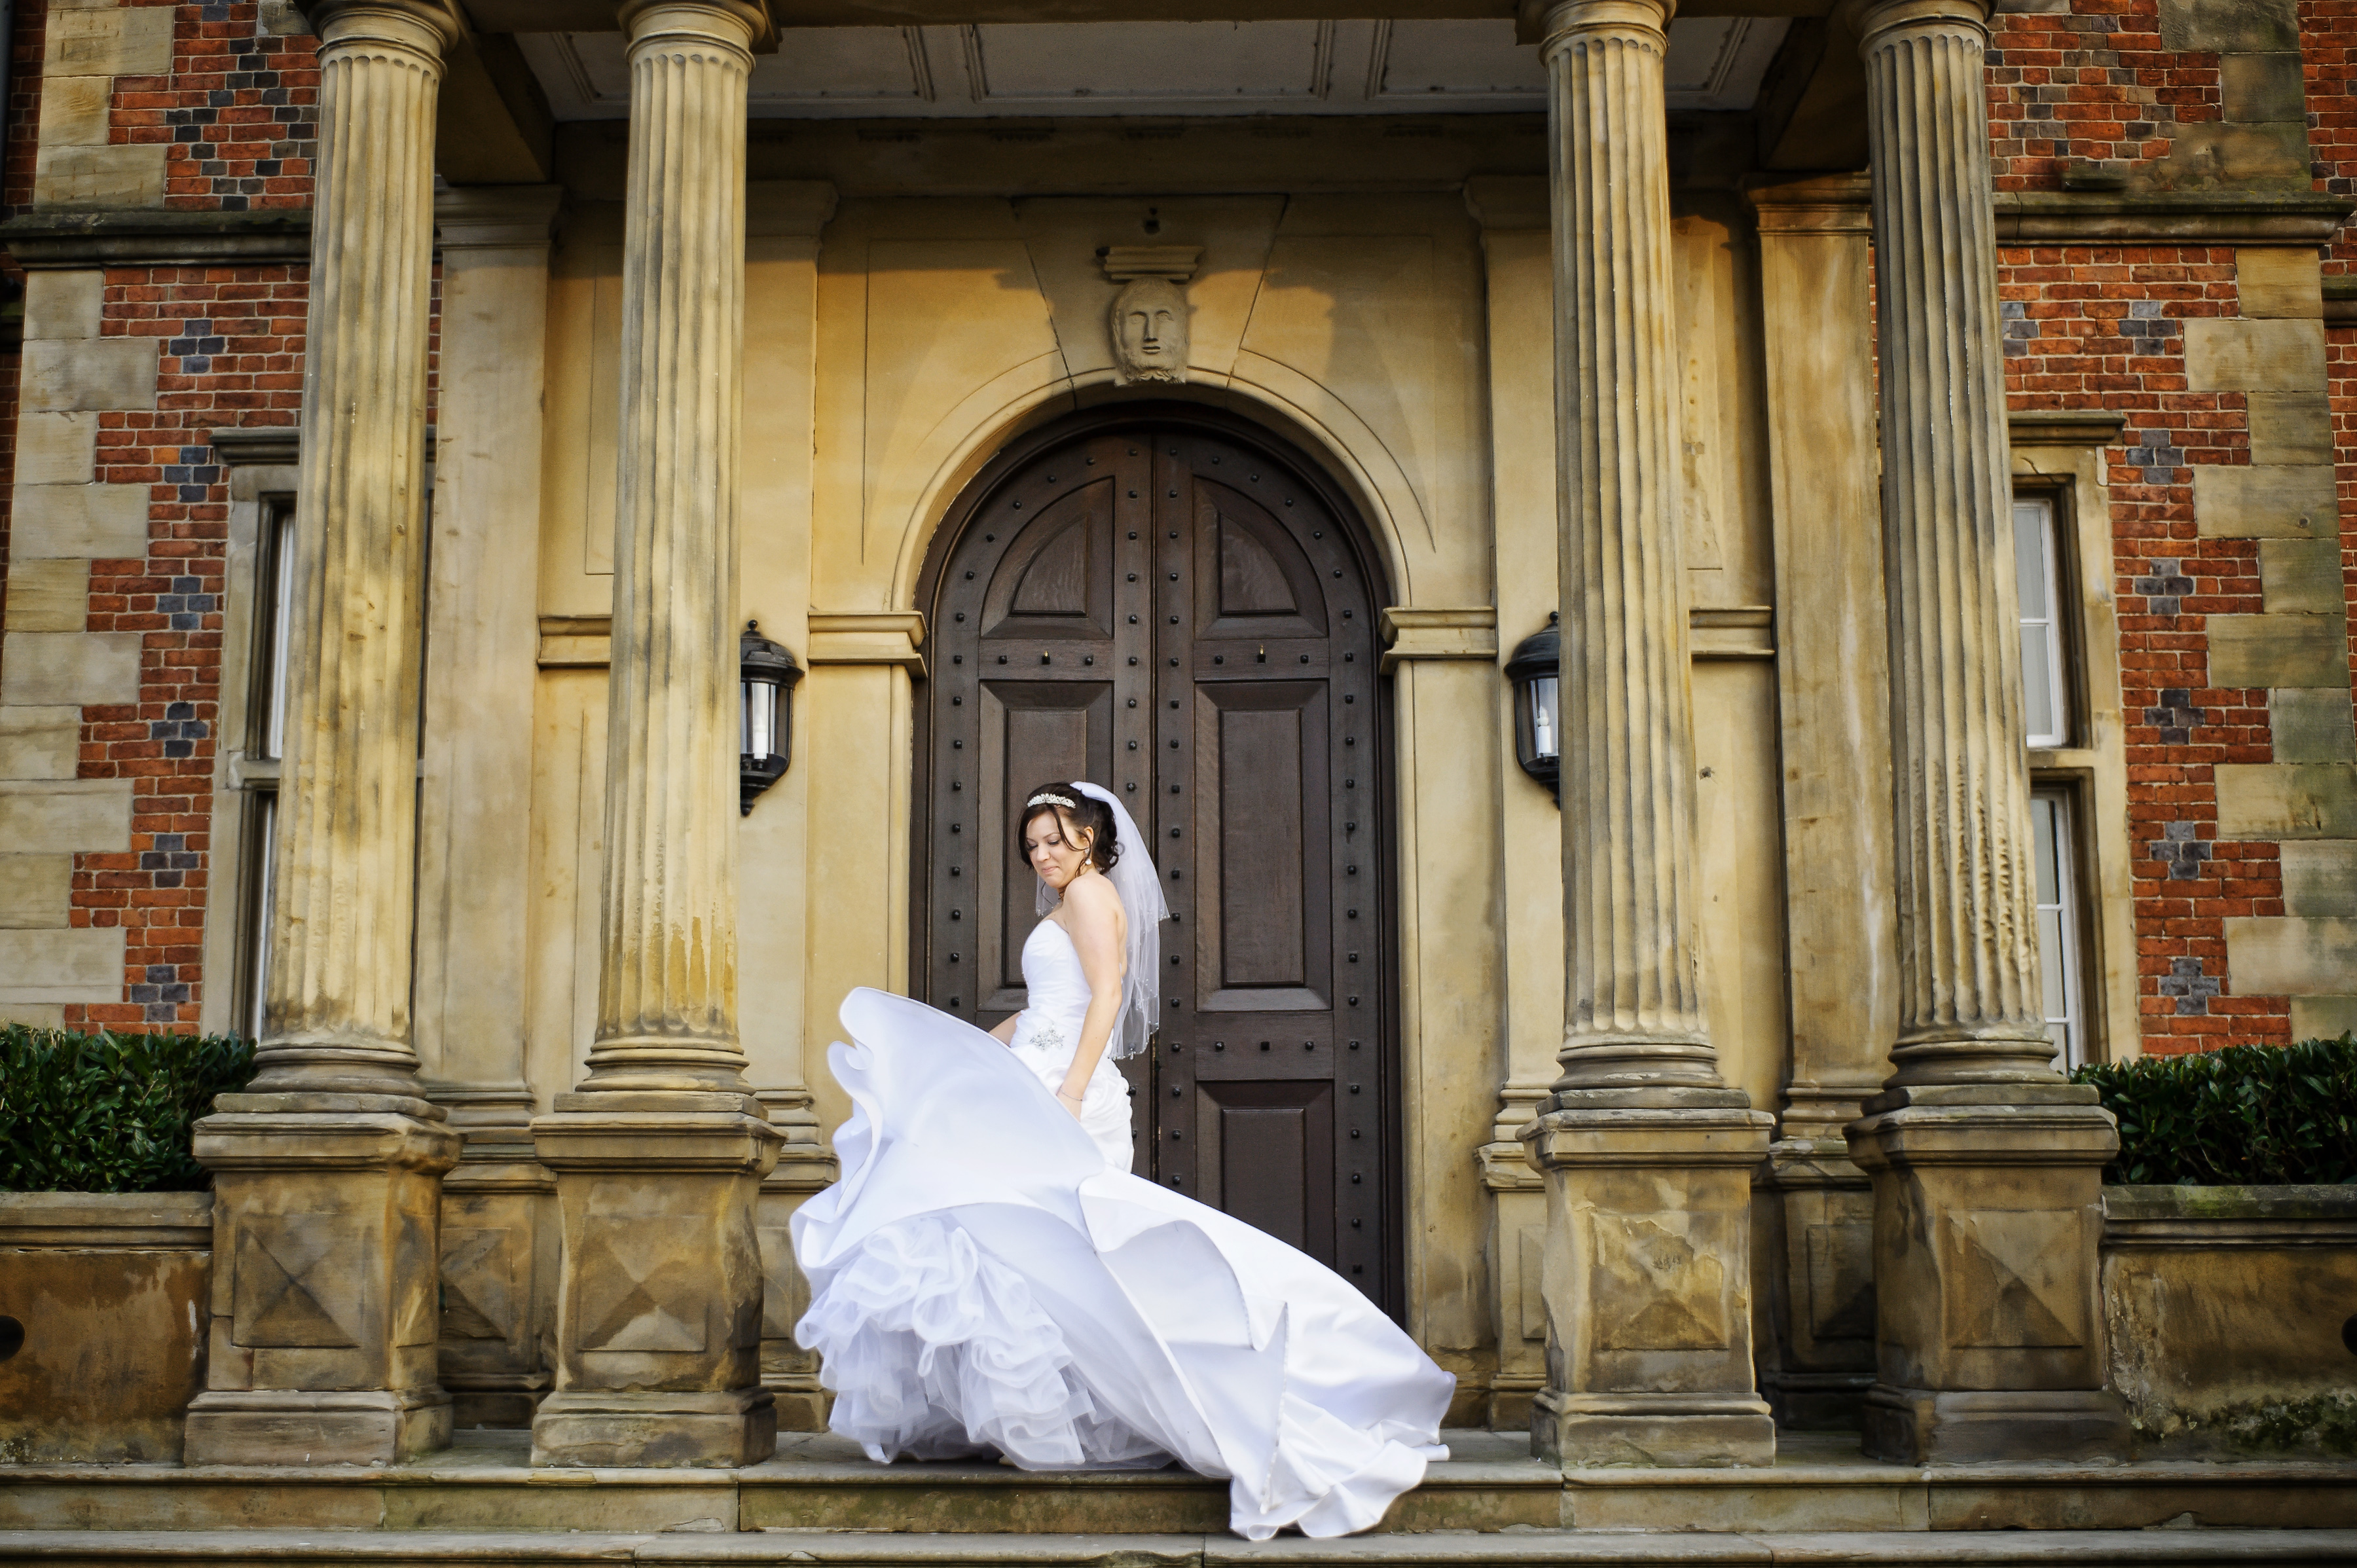 Mar hall wedding photography